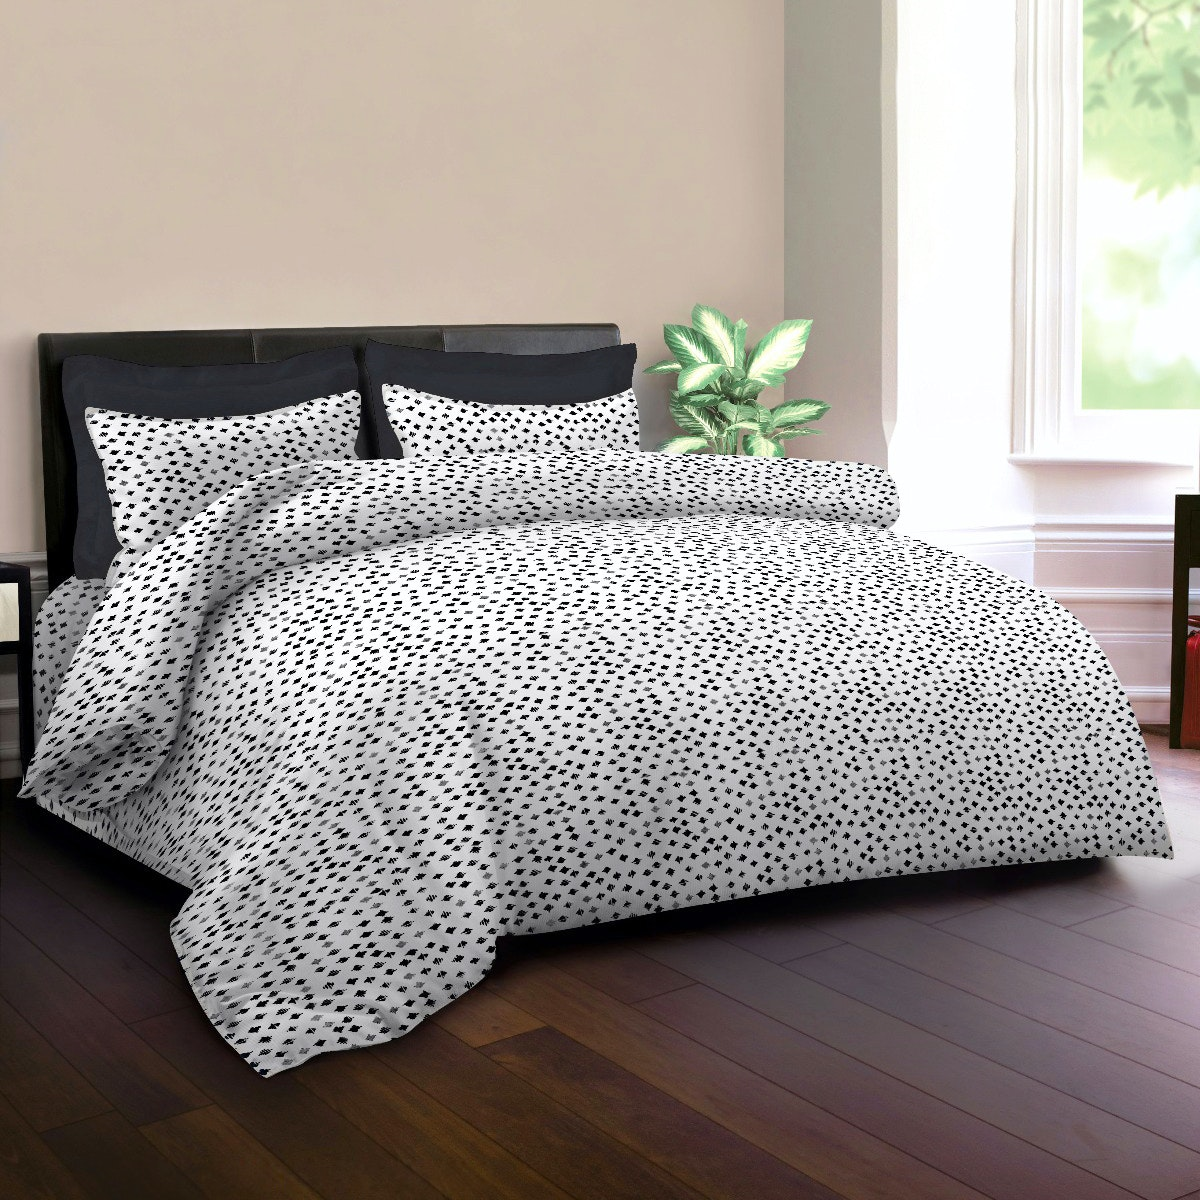 King Rabbit Set Bed Cover & Sprei Sarung Bantal King Motif Autograph Sign - Hitam Uk 180x200x40 cm